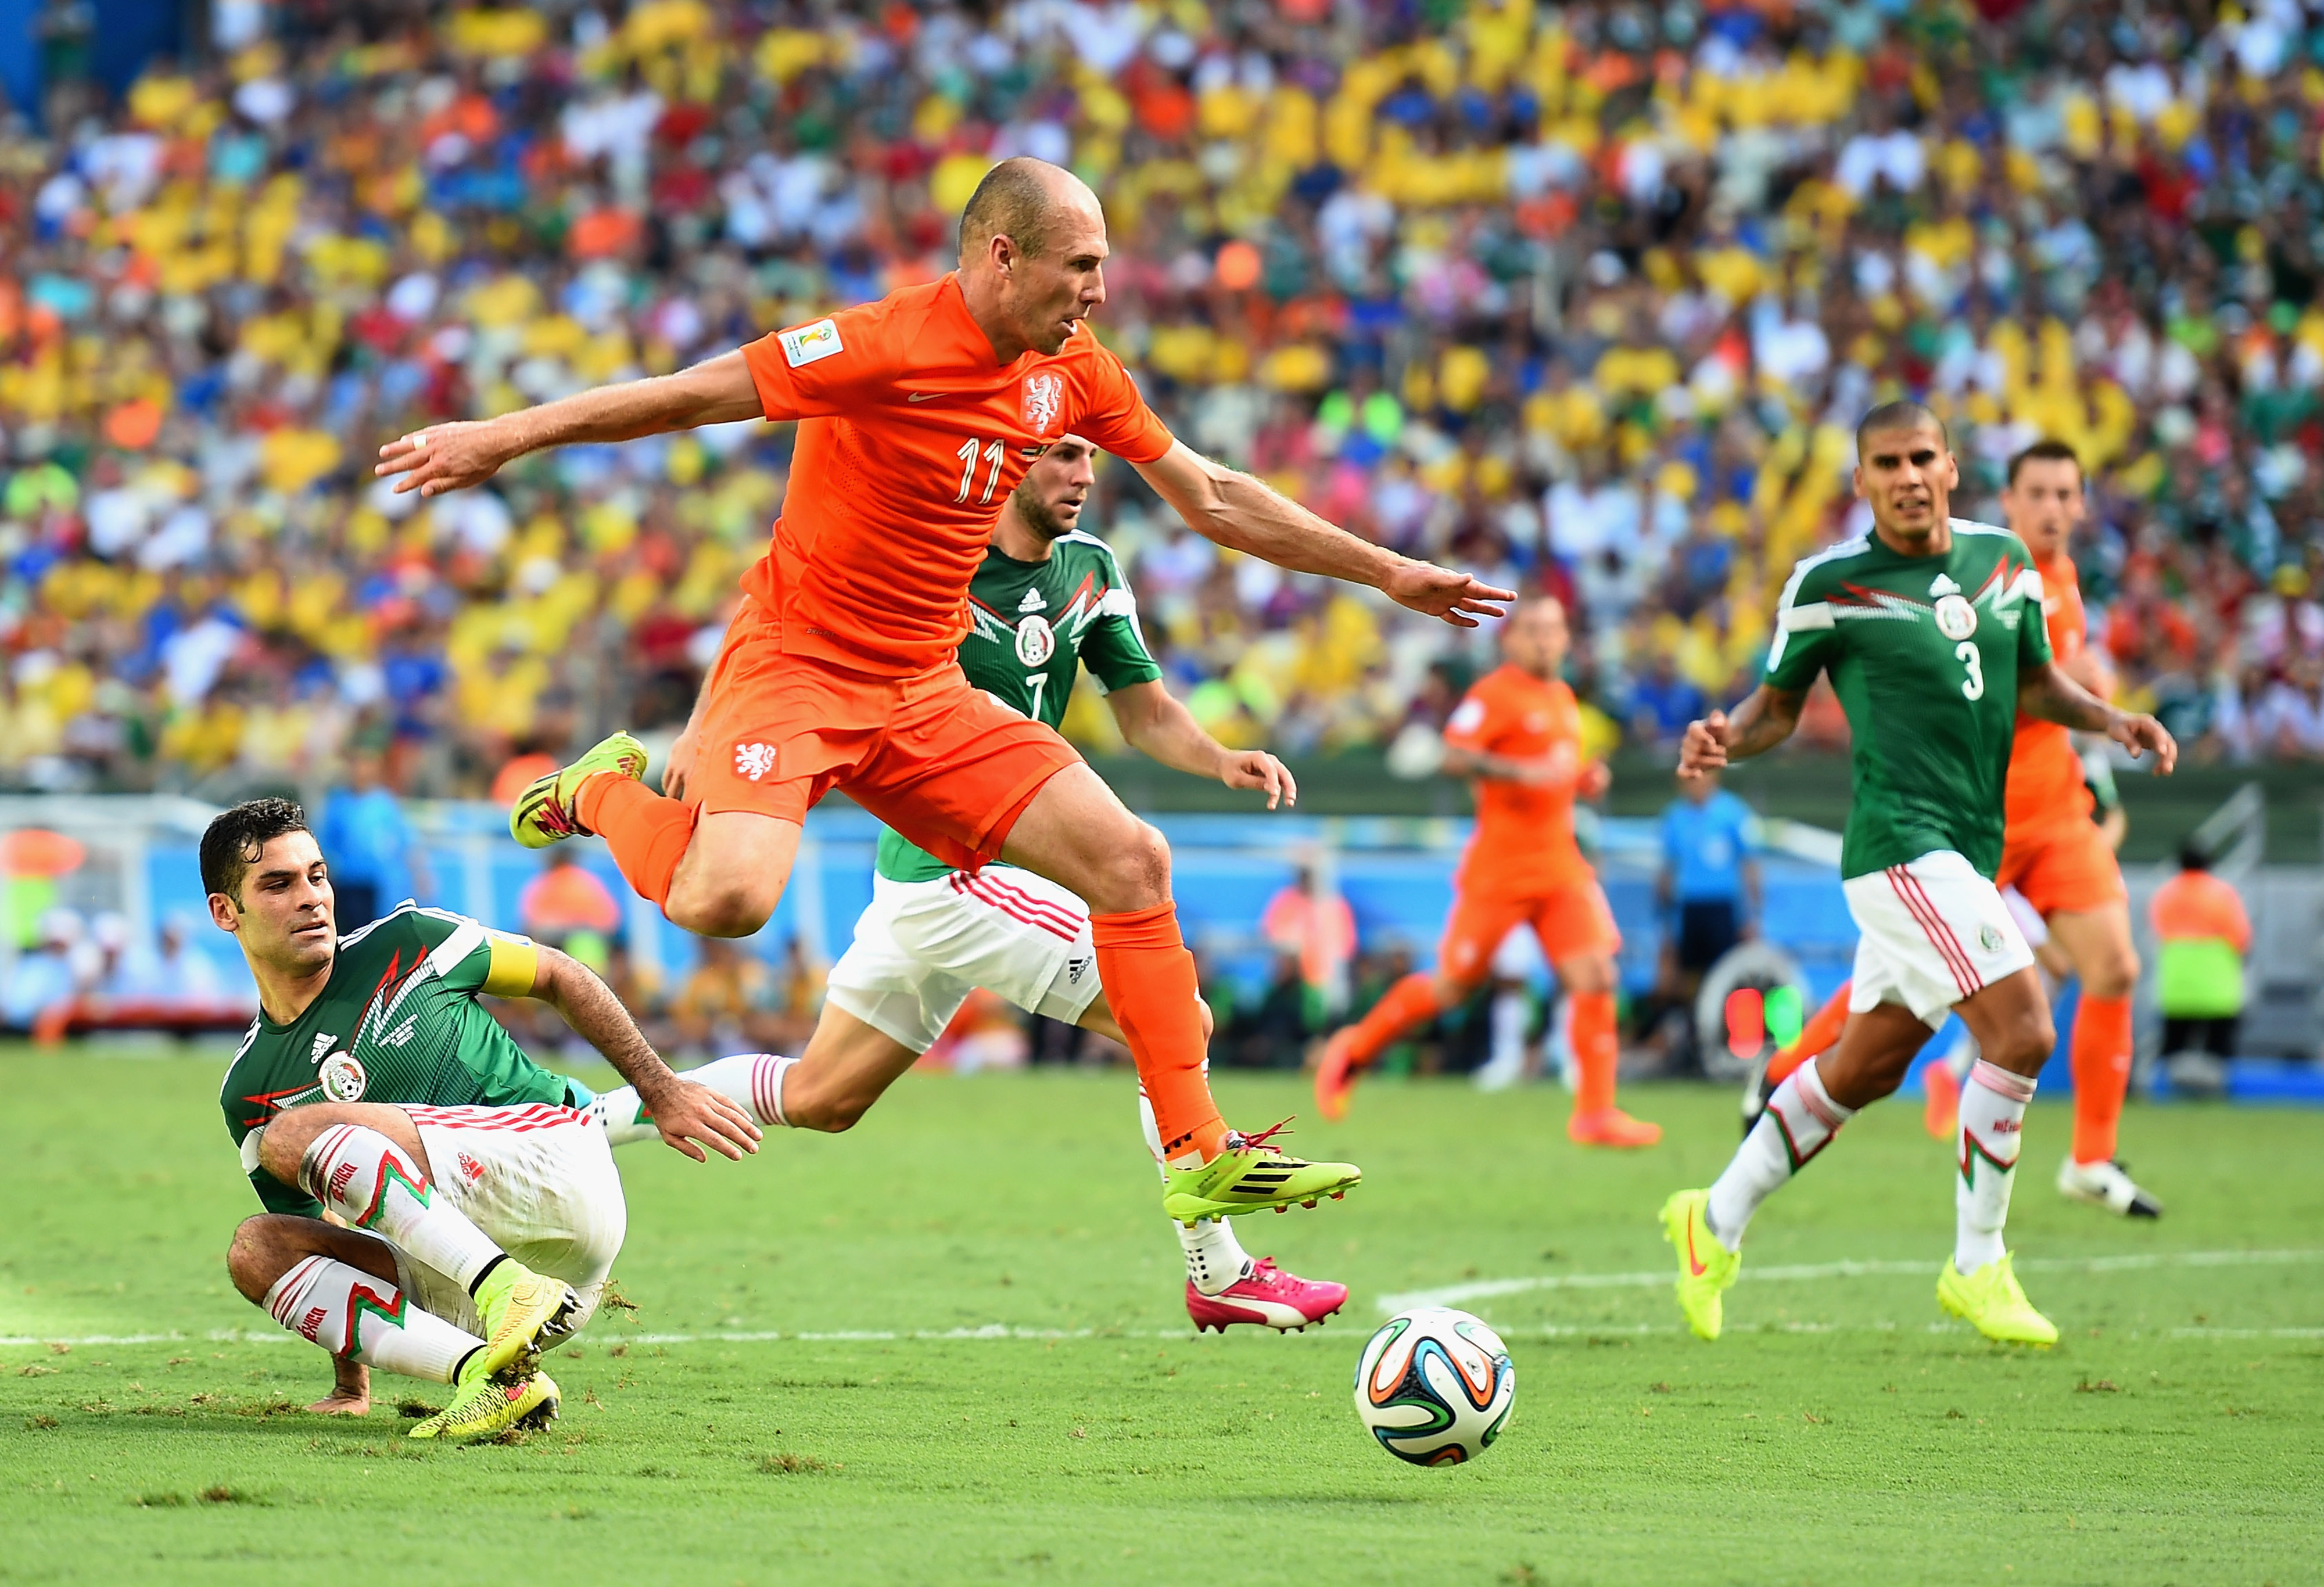 Arjen Robben admits diving during Mexico game